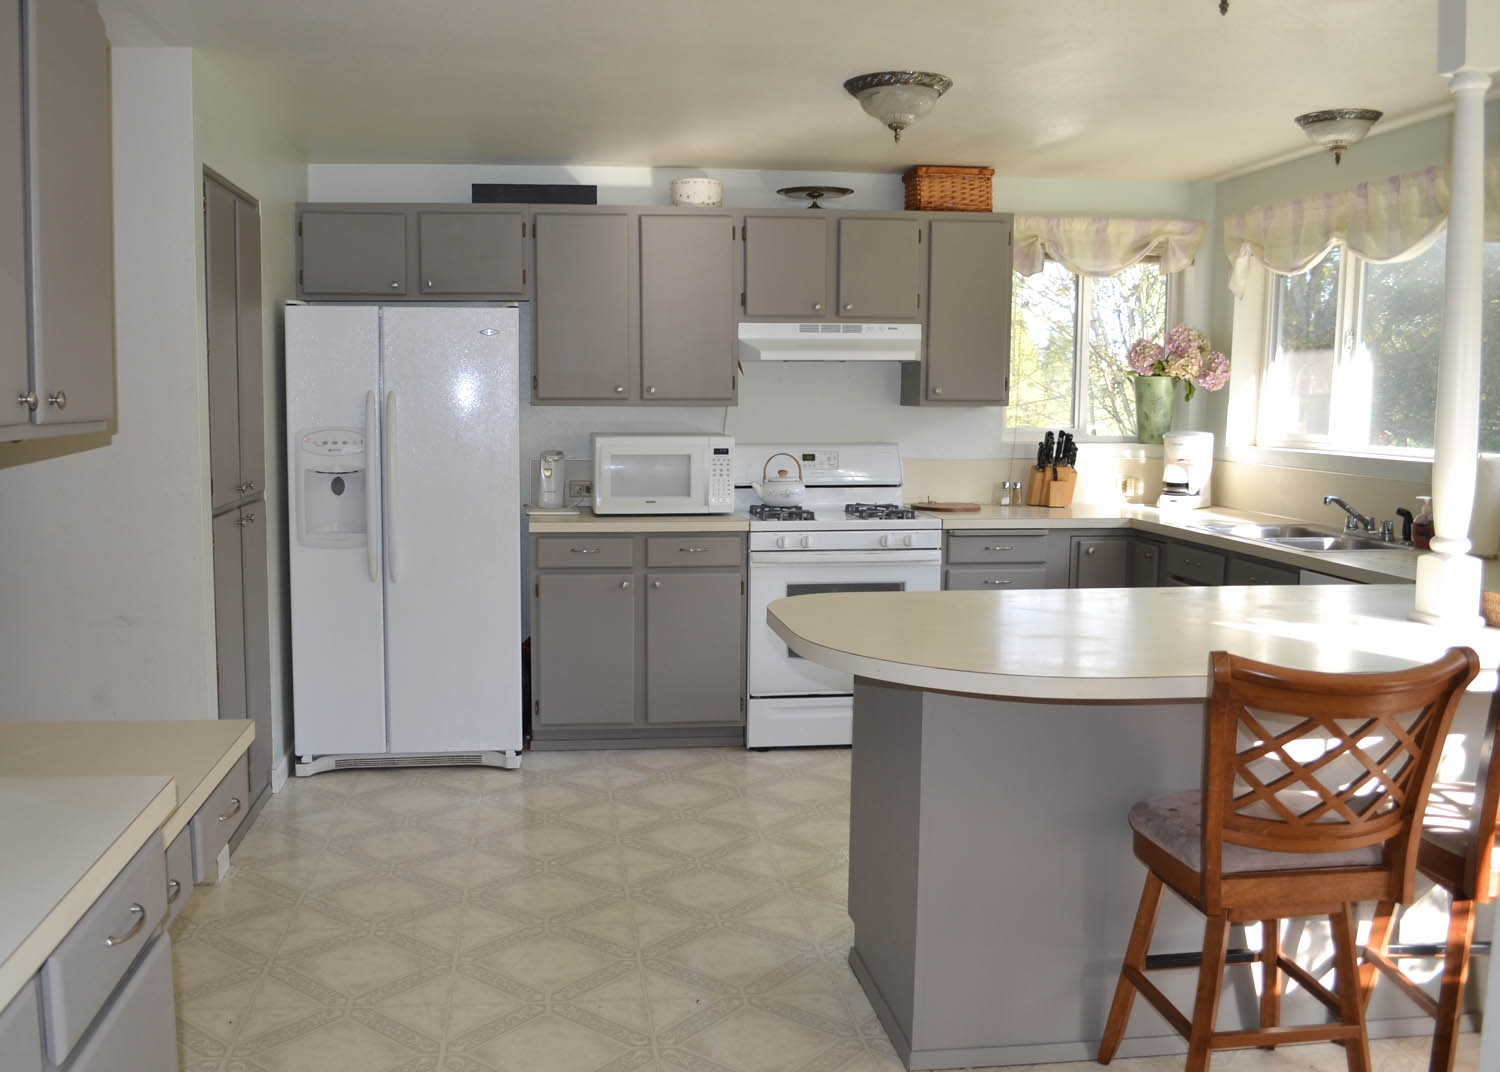 Updating Old Laminate Kitchen Cabinets